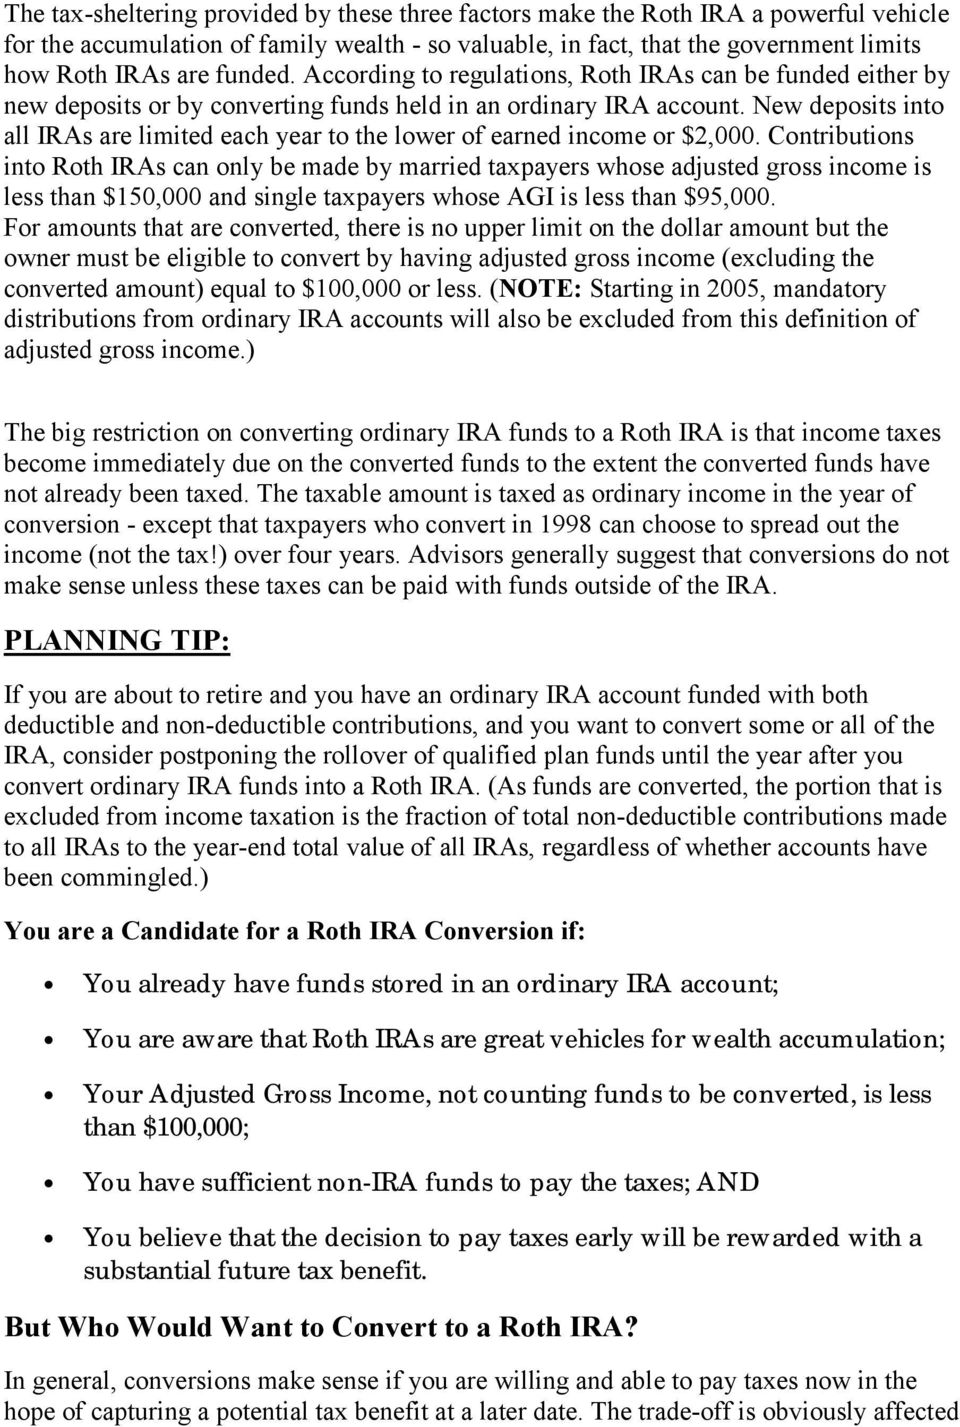 New deposits into all IRAs are limited each year to the lower of earned income or $2,000.